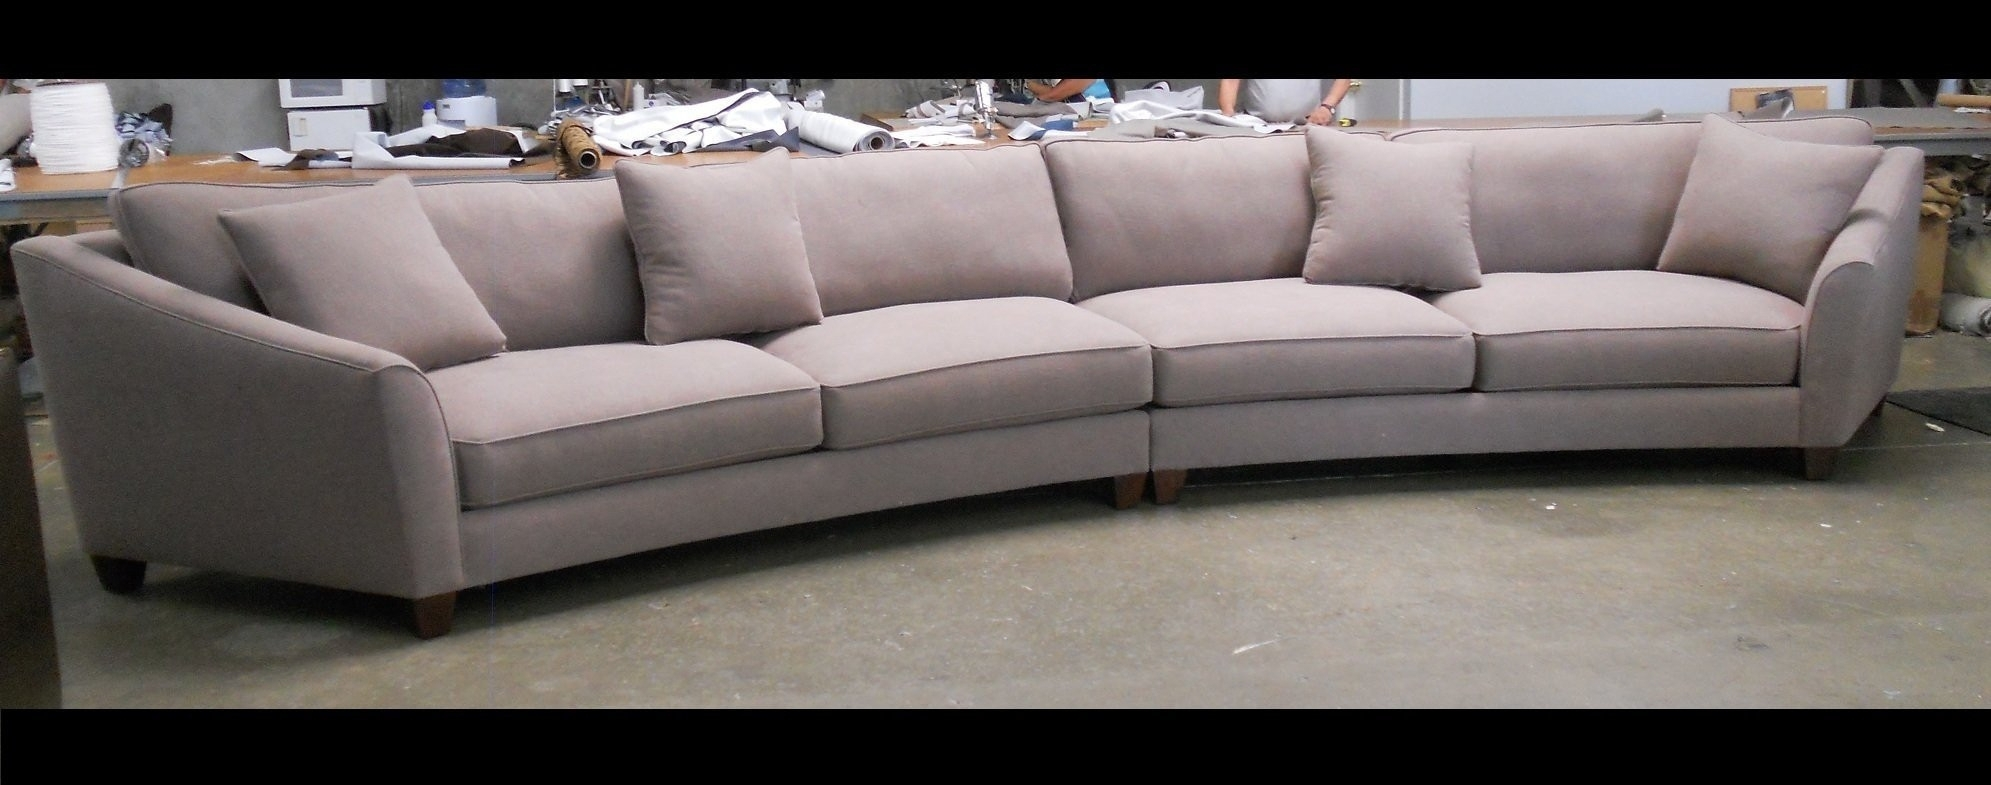 Sectional Sofa : Grey Curved Sectional Semi Circle Couches For Sale Intended For Round Sectional Sofas (Image 9 of 10)